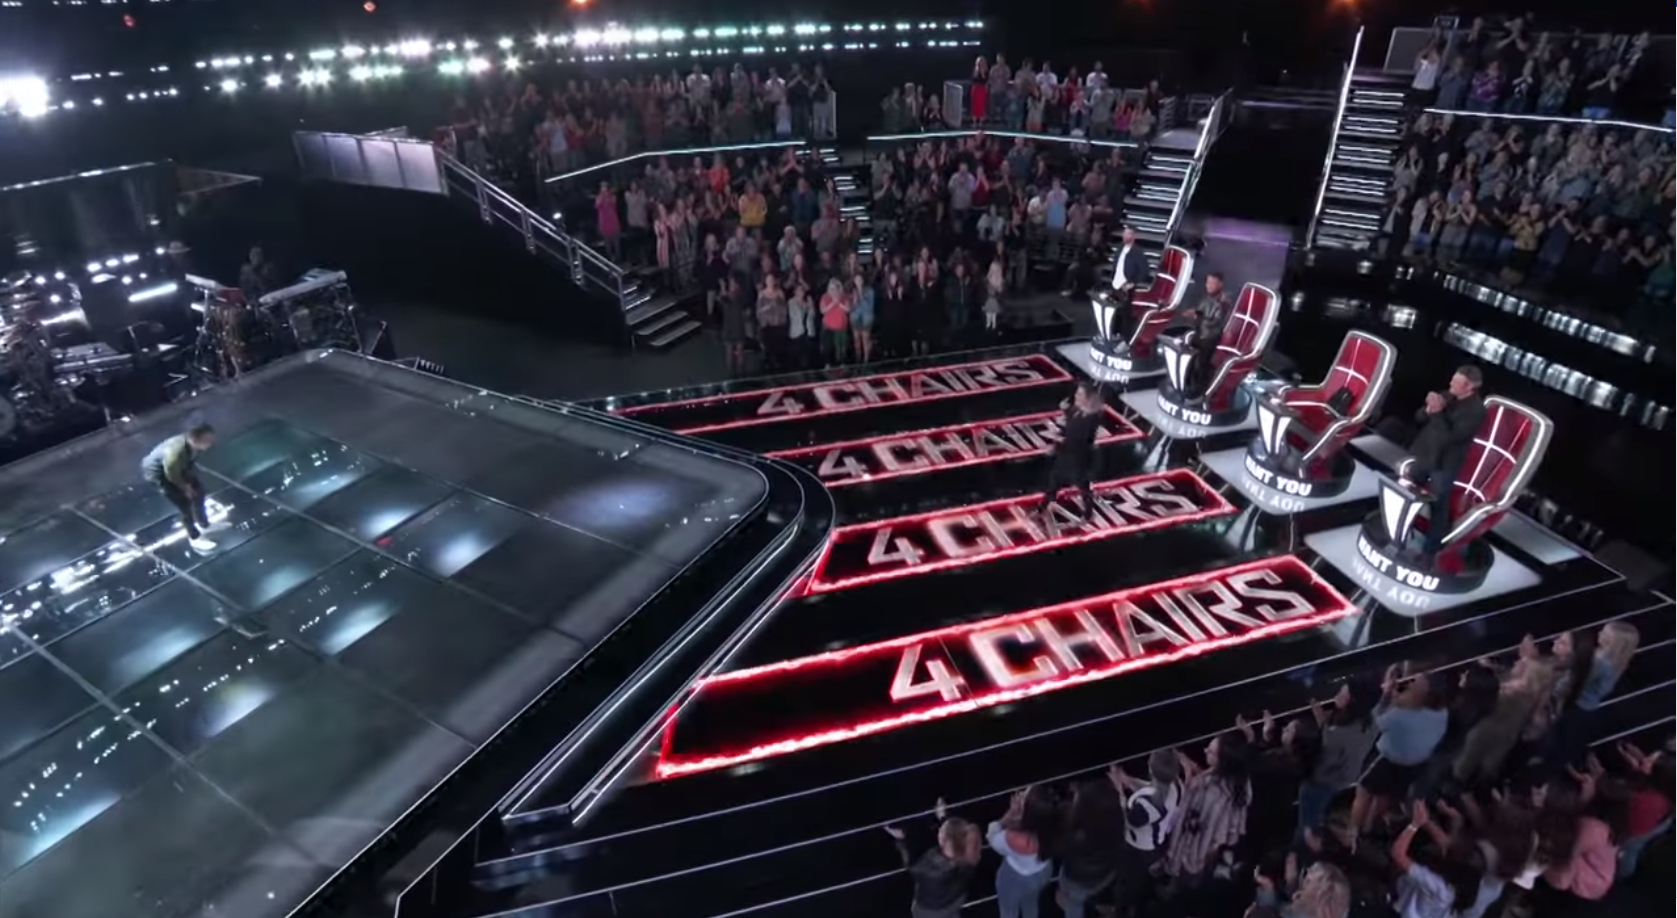 """Kelly Clarkson, a coach on """"The Voice,"""" approaches Jej Vinson after his blind audition in which all four coaches turned their chairs for him. The episode aired on March 5, 2019."""